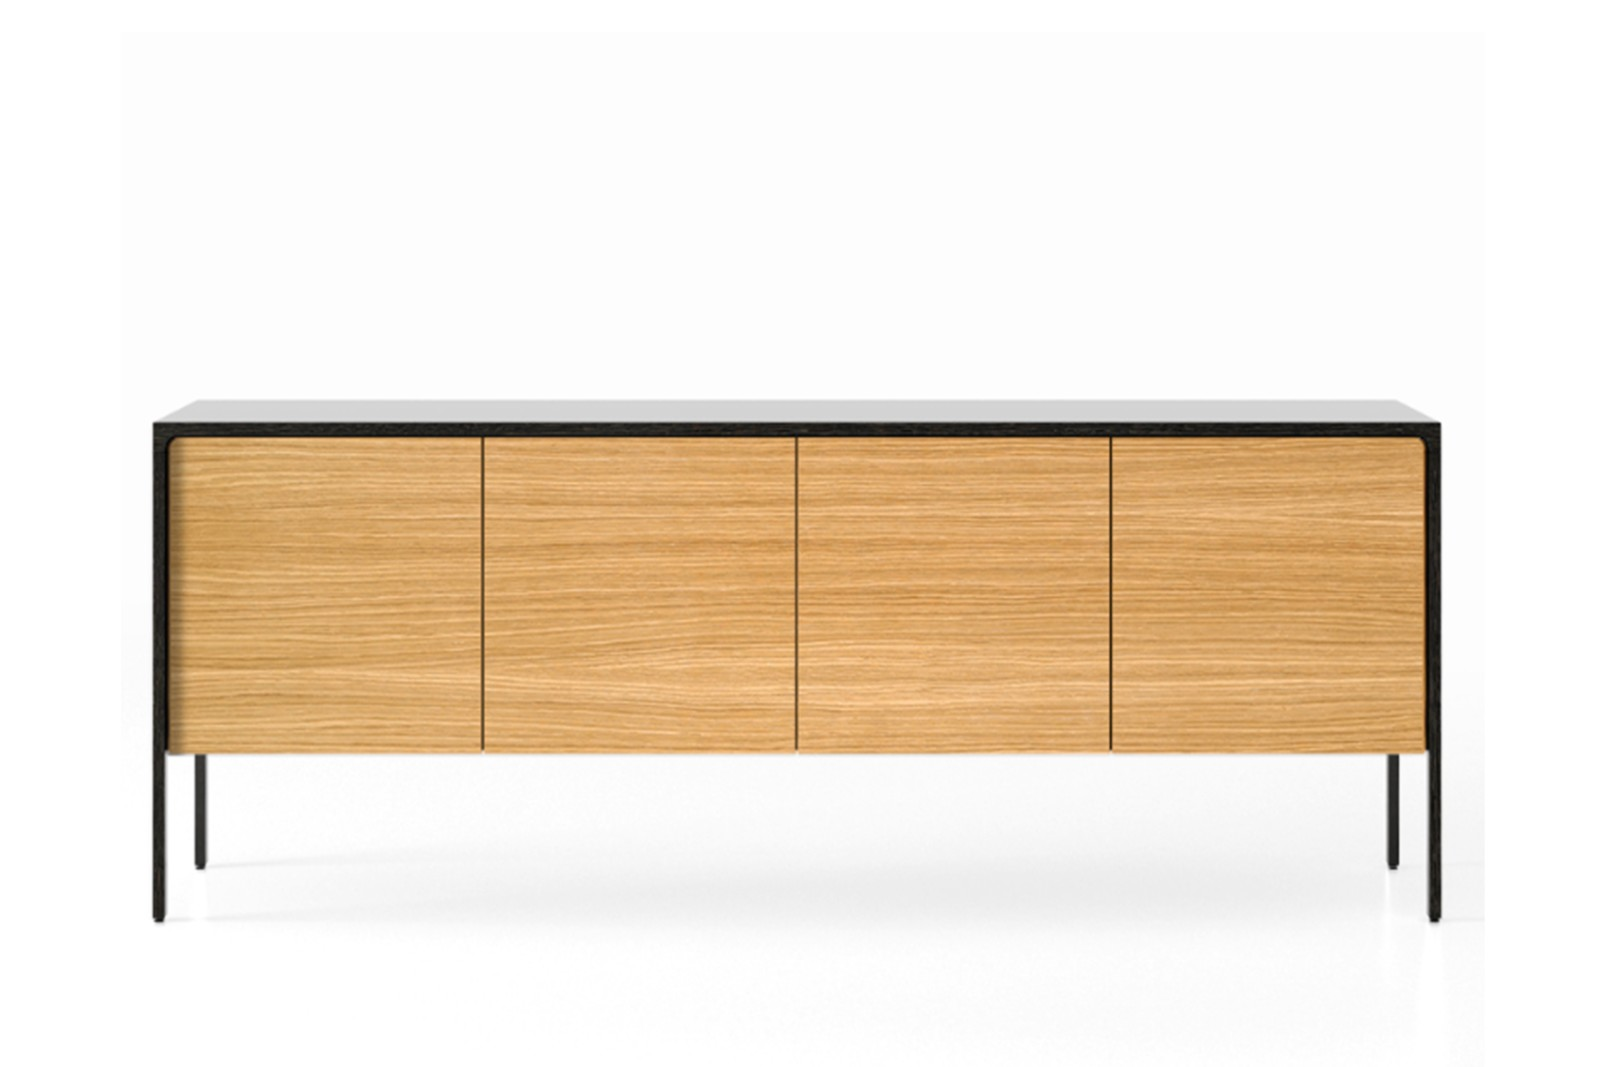 TAC215 Tactile Sideboard Super-Matt Oak, White Open Pore Lacquered on Oak